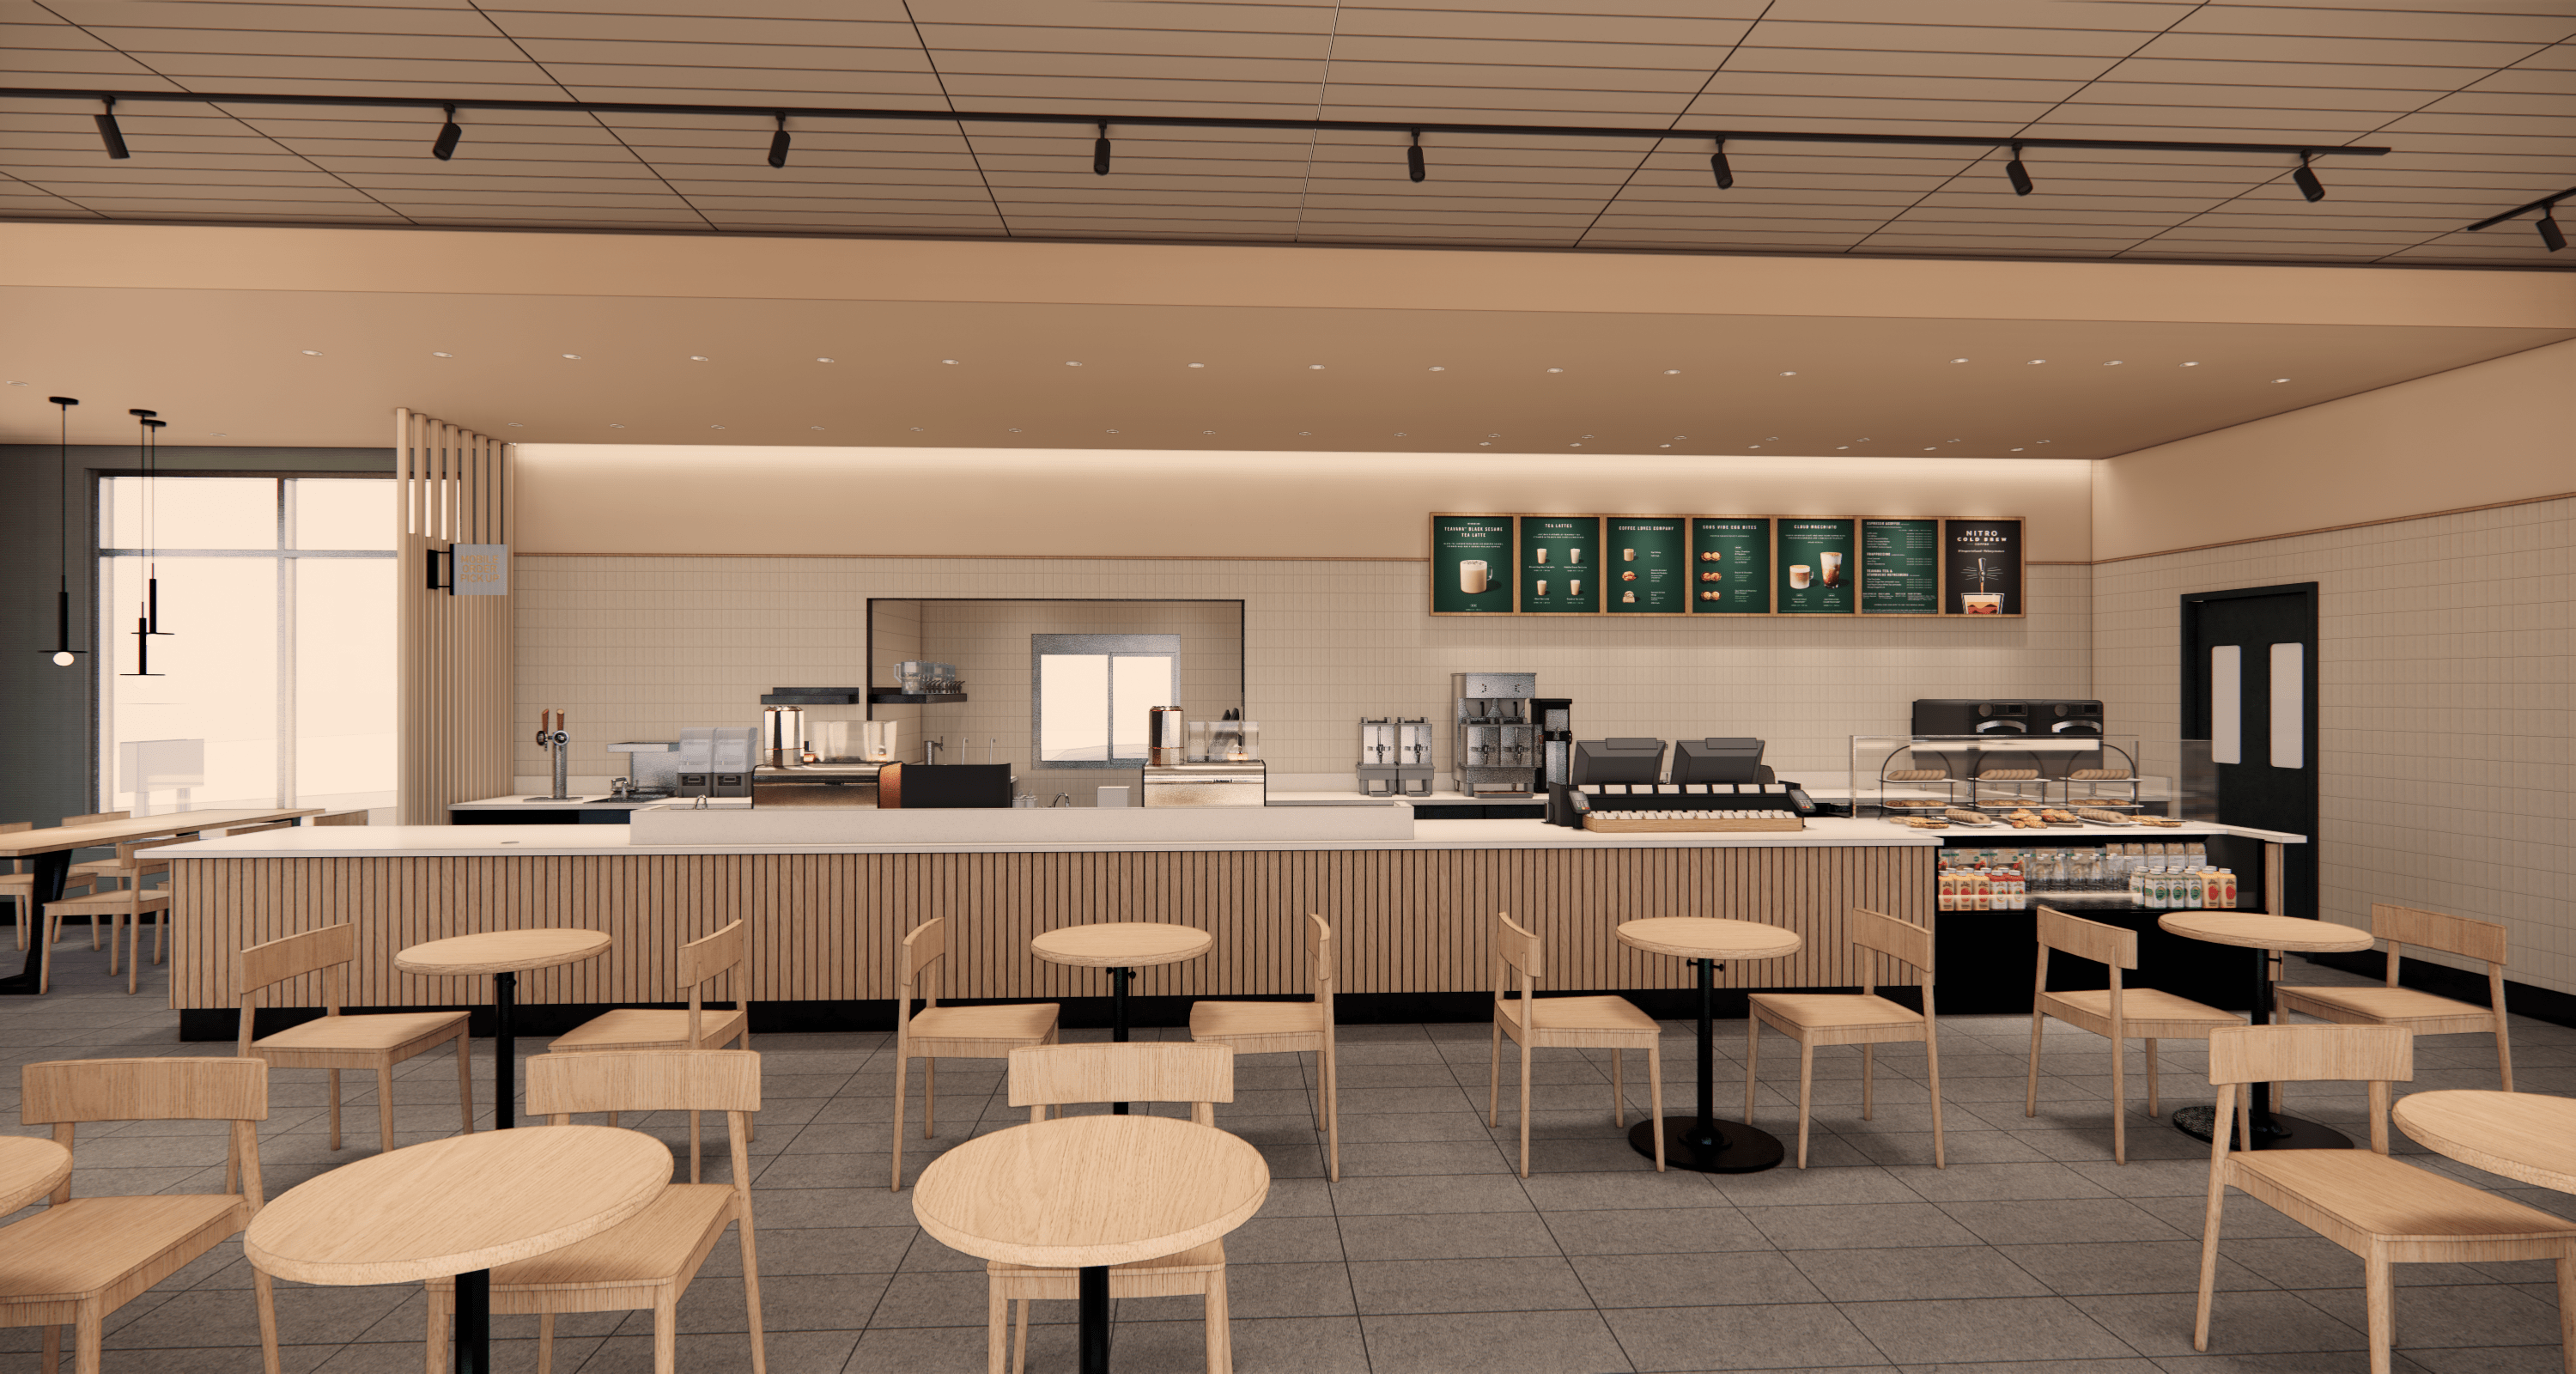 Rendering of Starbucks Canada's first sustainably-constructed drive-thru cafe. Rendering: Starbucks